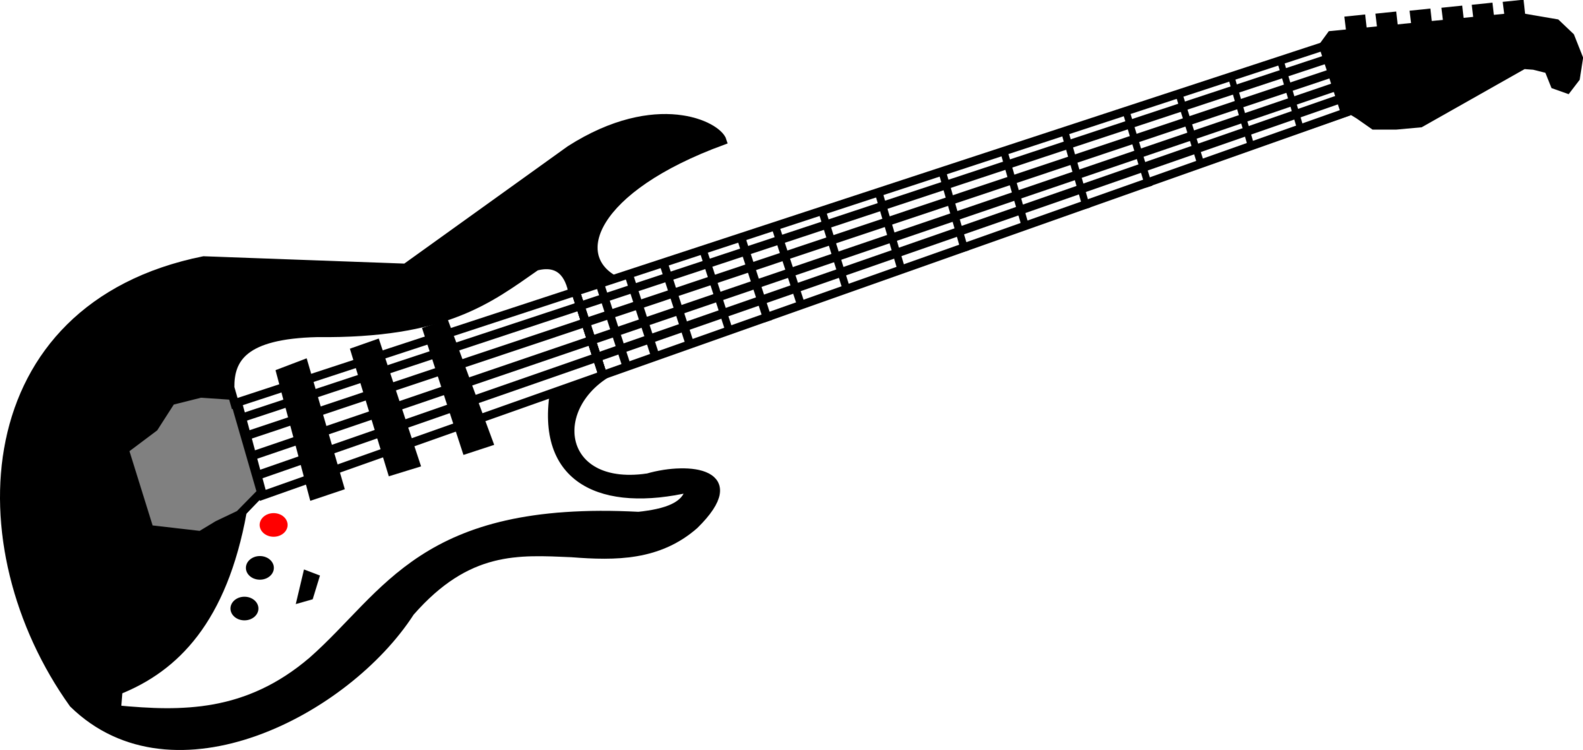 Acoustic clipart. Electric guitar bass music